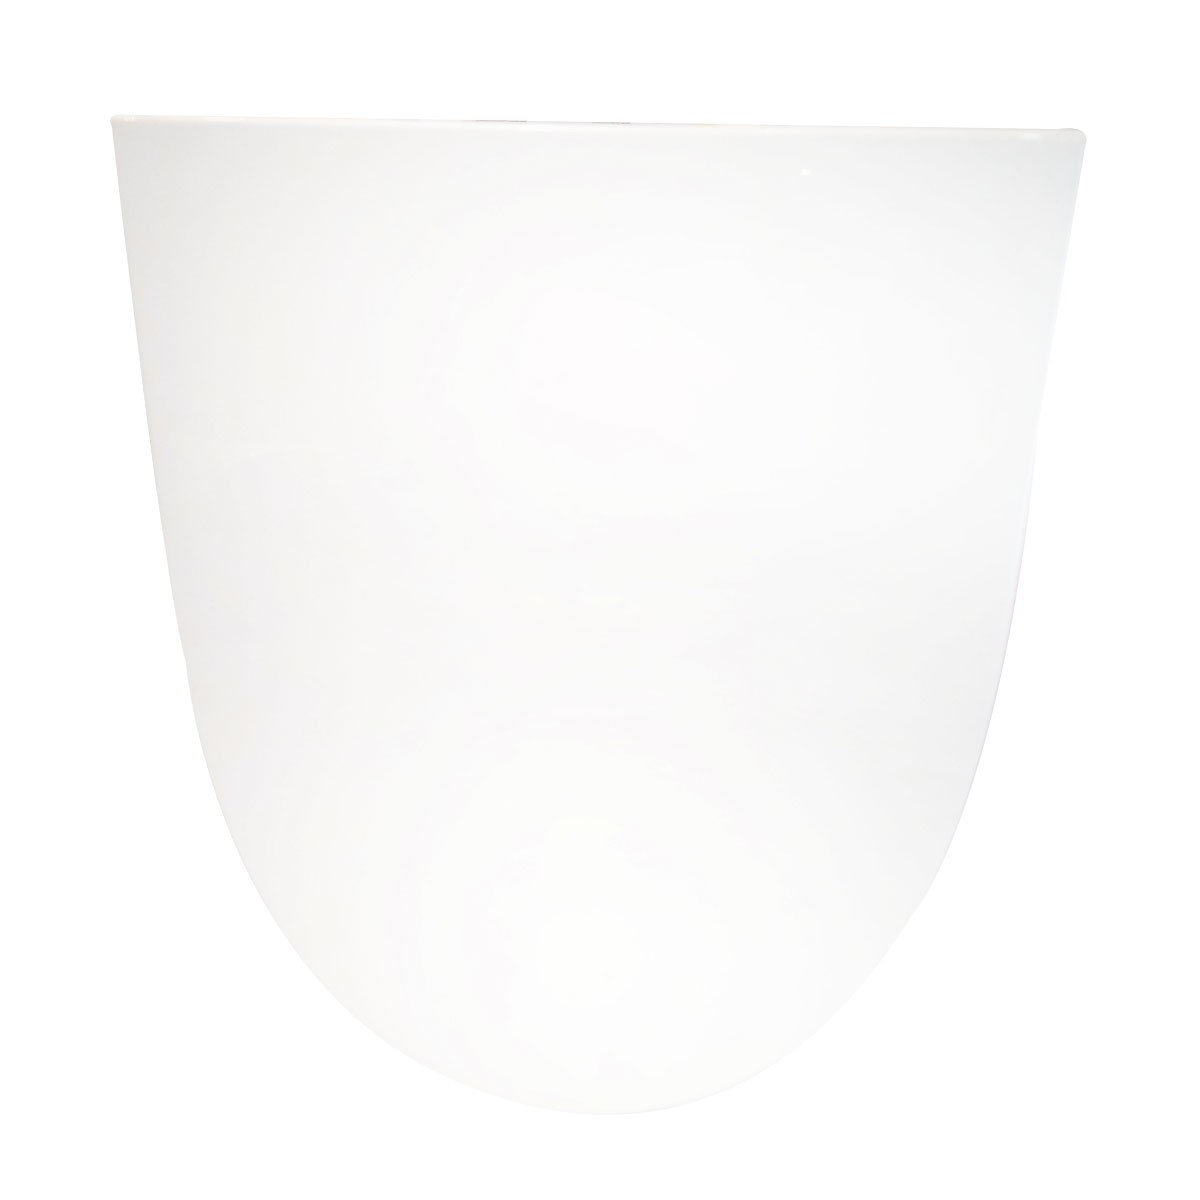 PP White Front Round Closed Soft Close Toilet Seat with Cover (DK-CL-059)